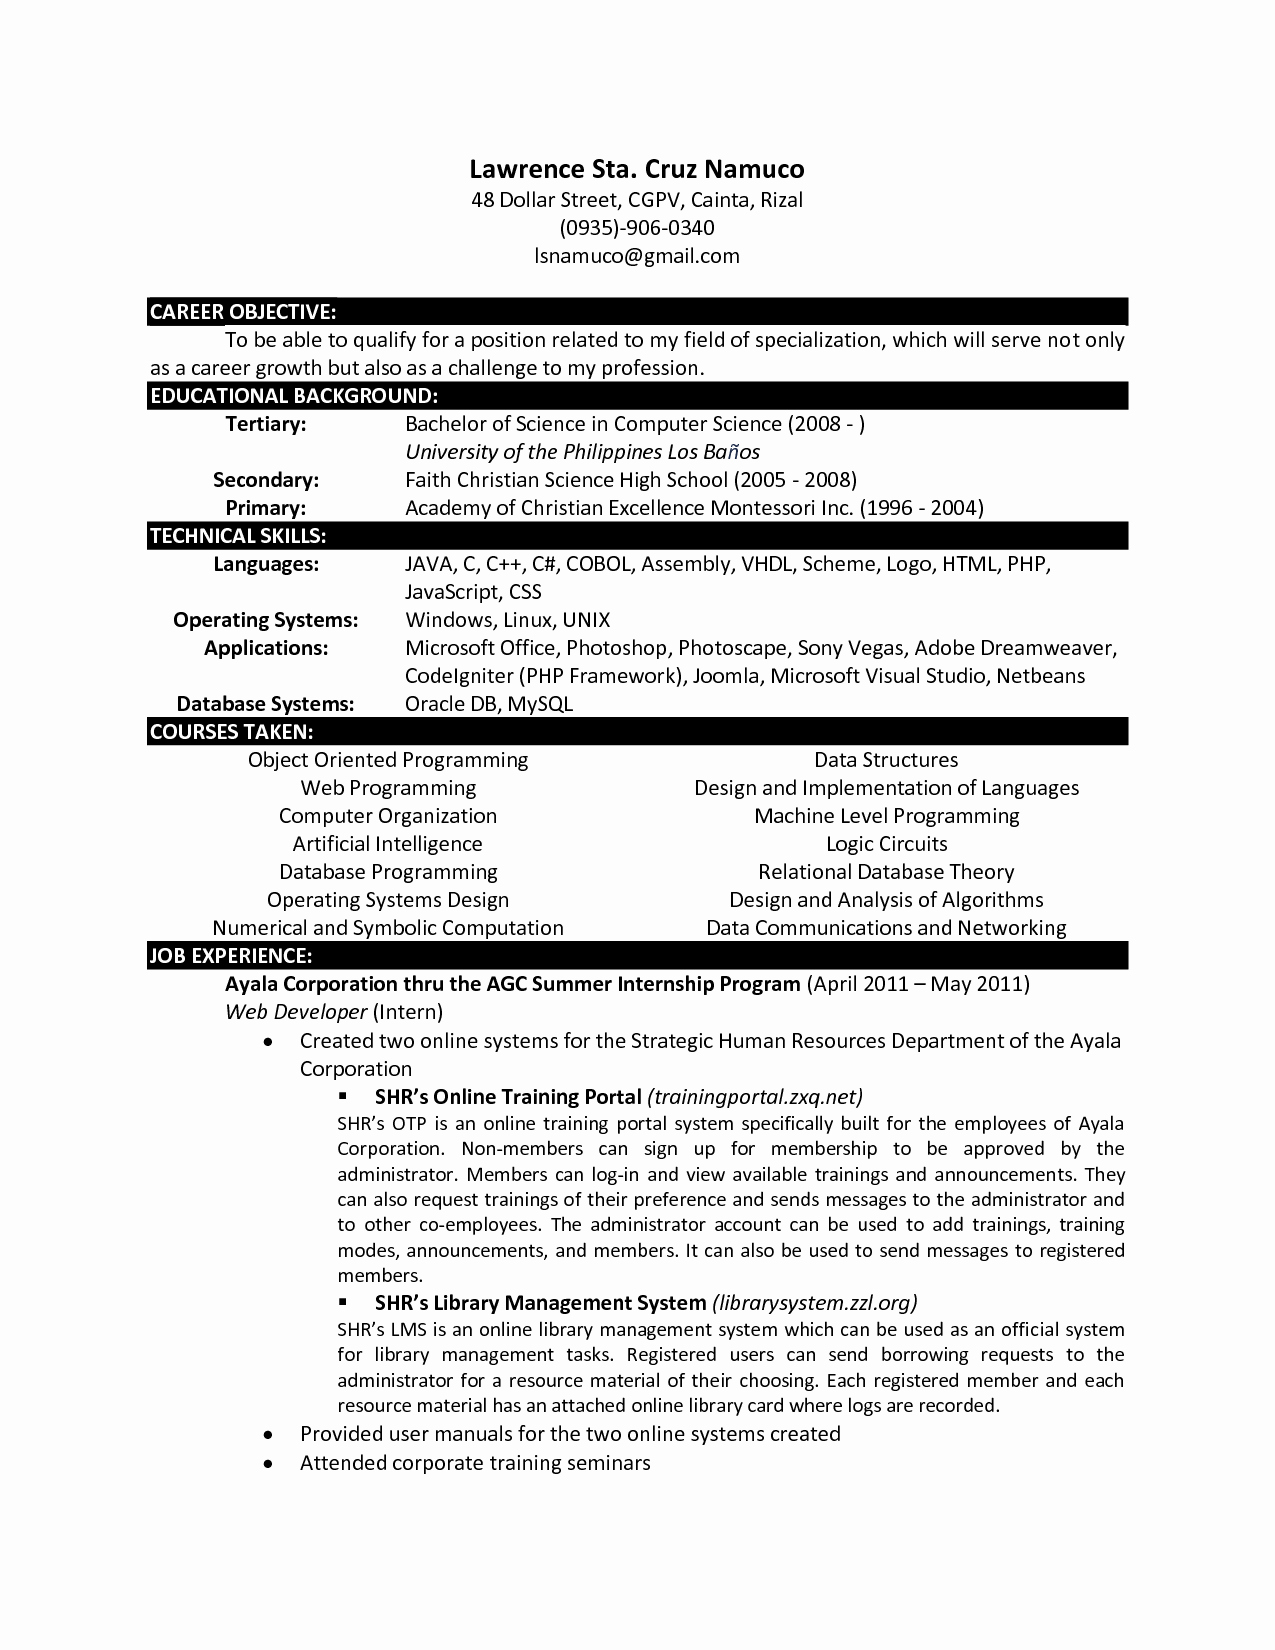 Computer Science Resume Templates Luxury Puter Science Resume Templates